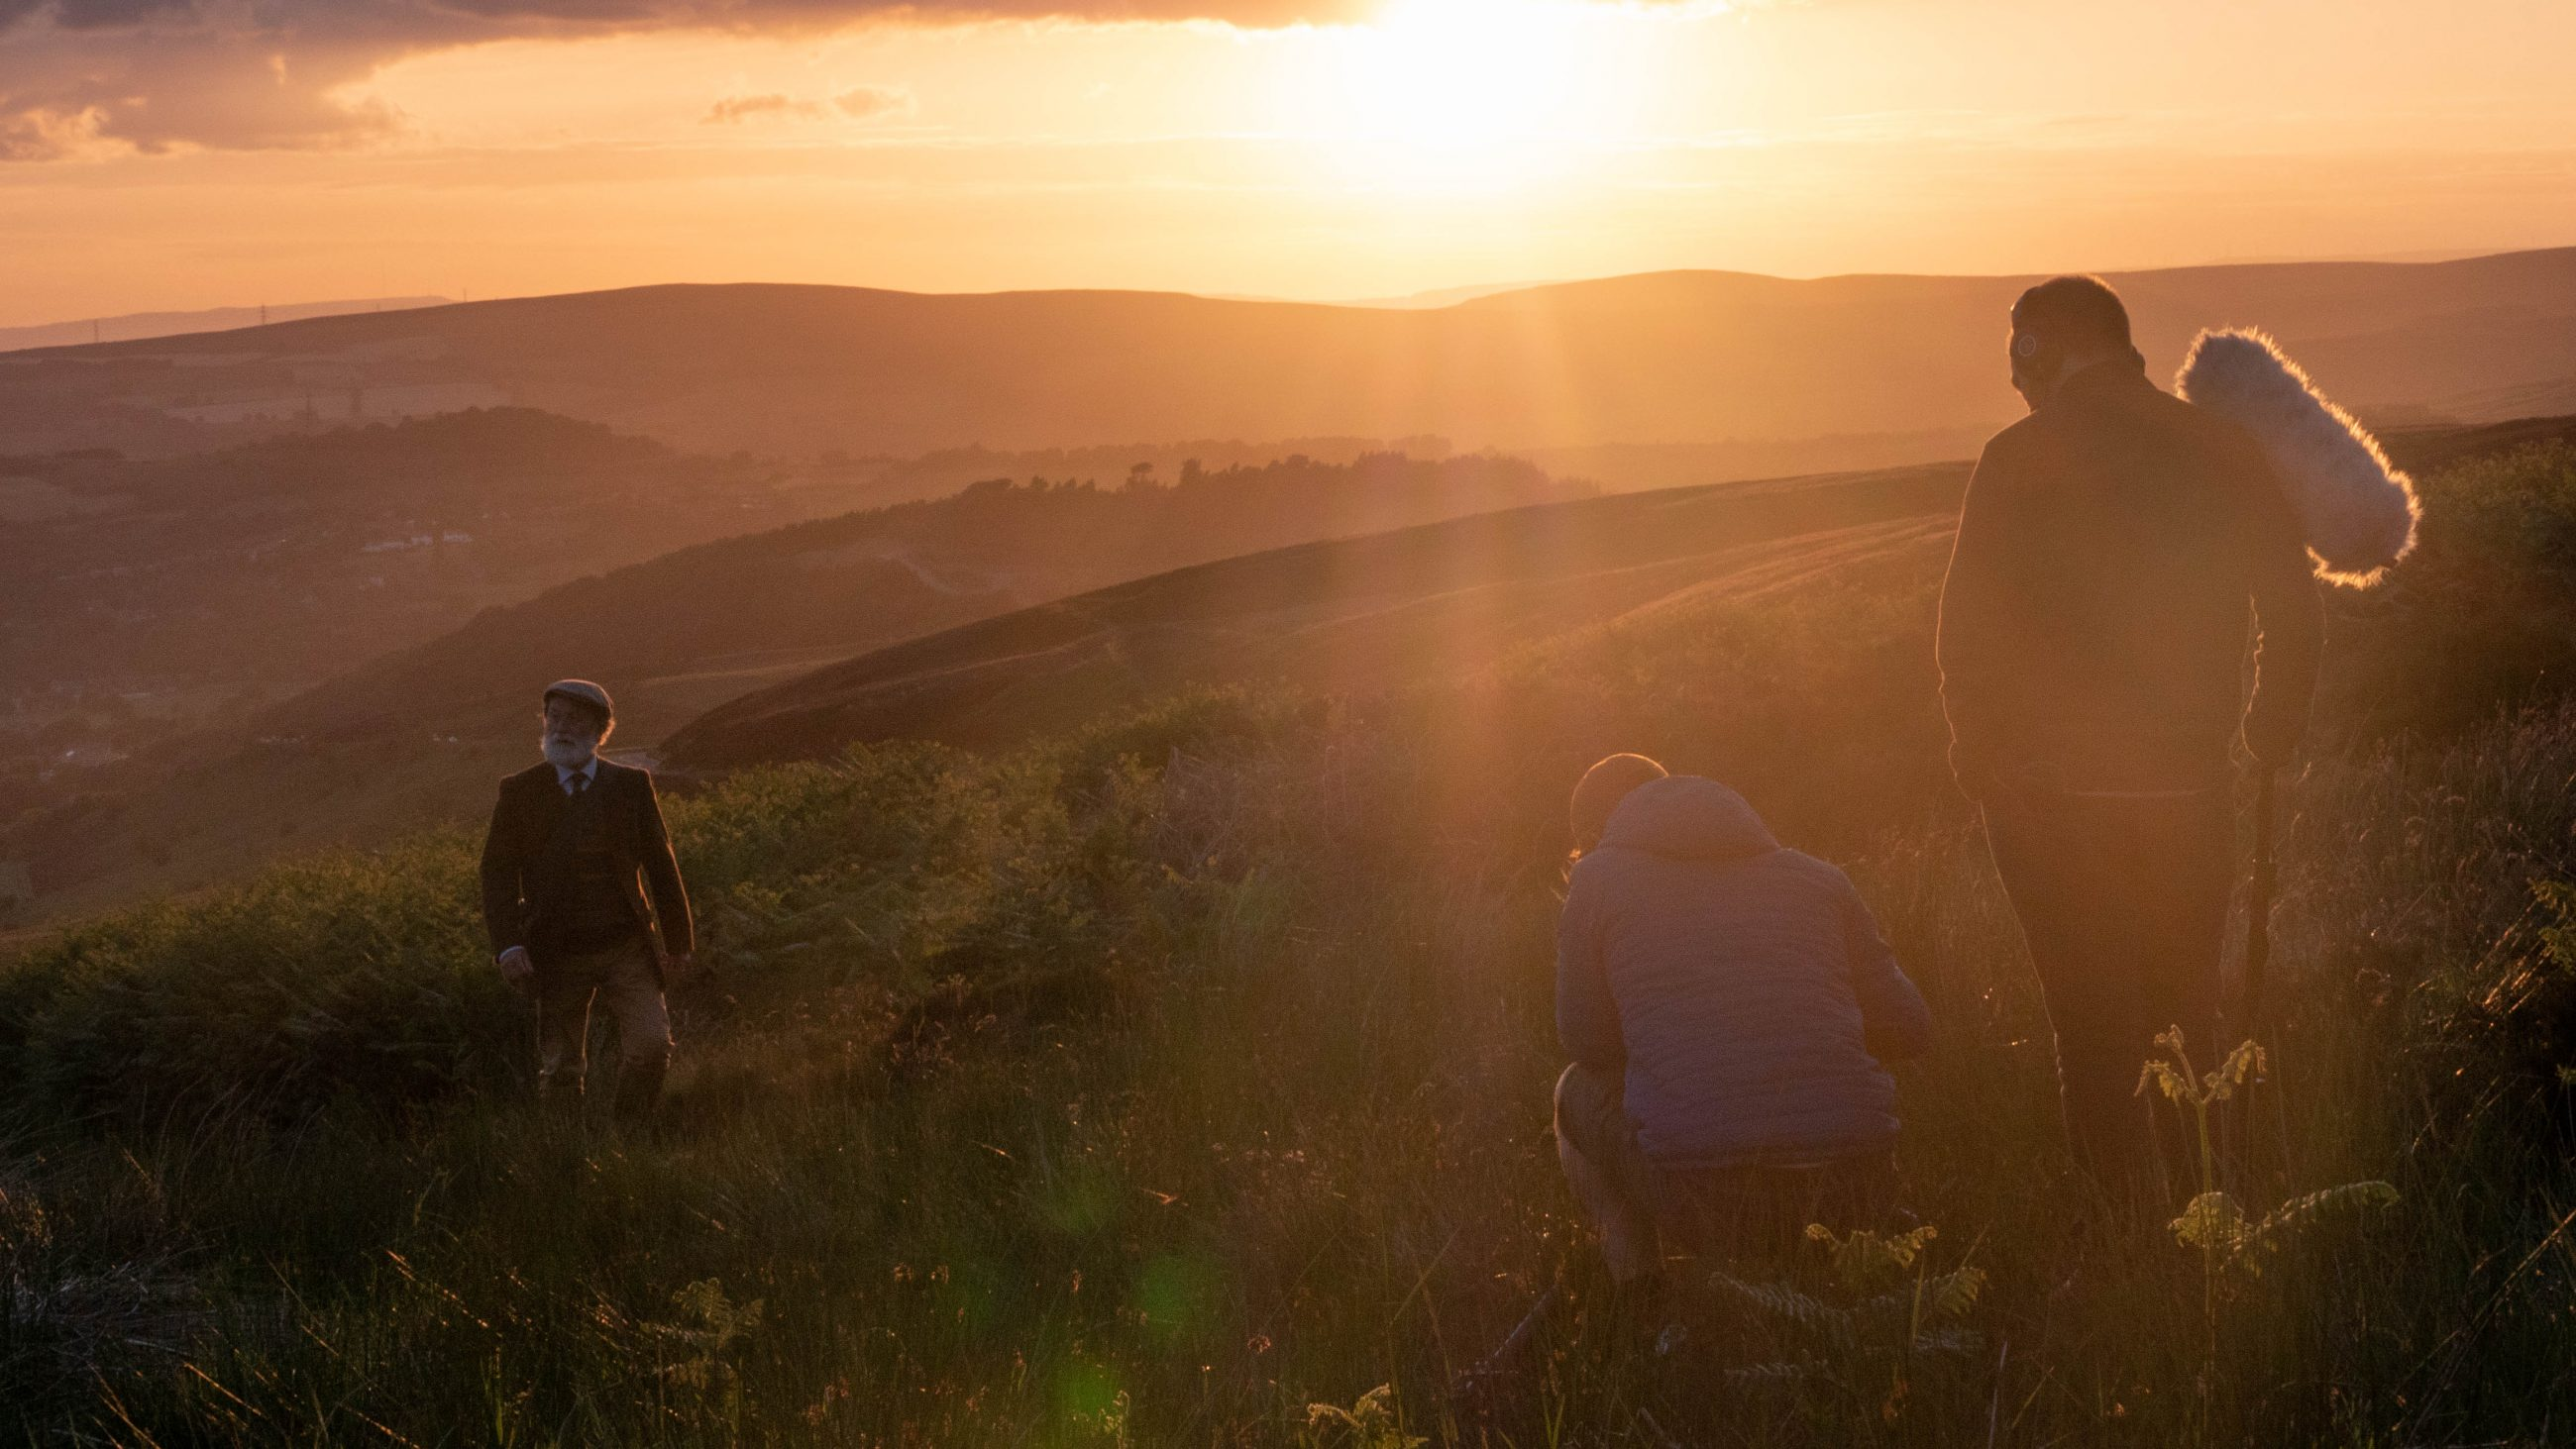 Behind the scenes, filming the final sequence of The Carbon Farmer at sunset